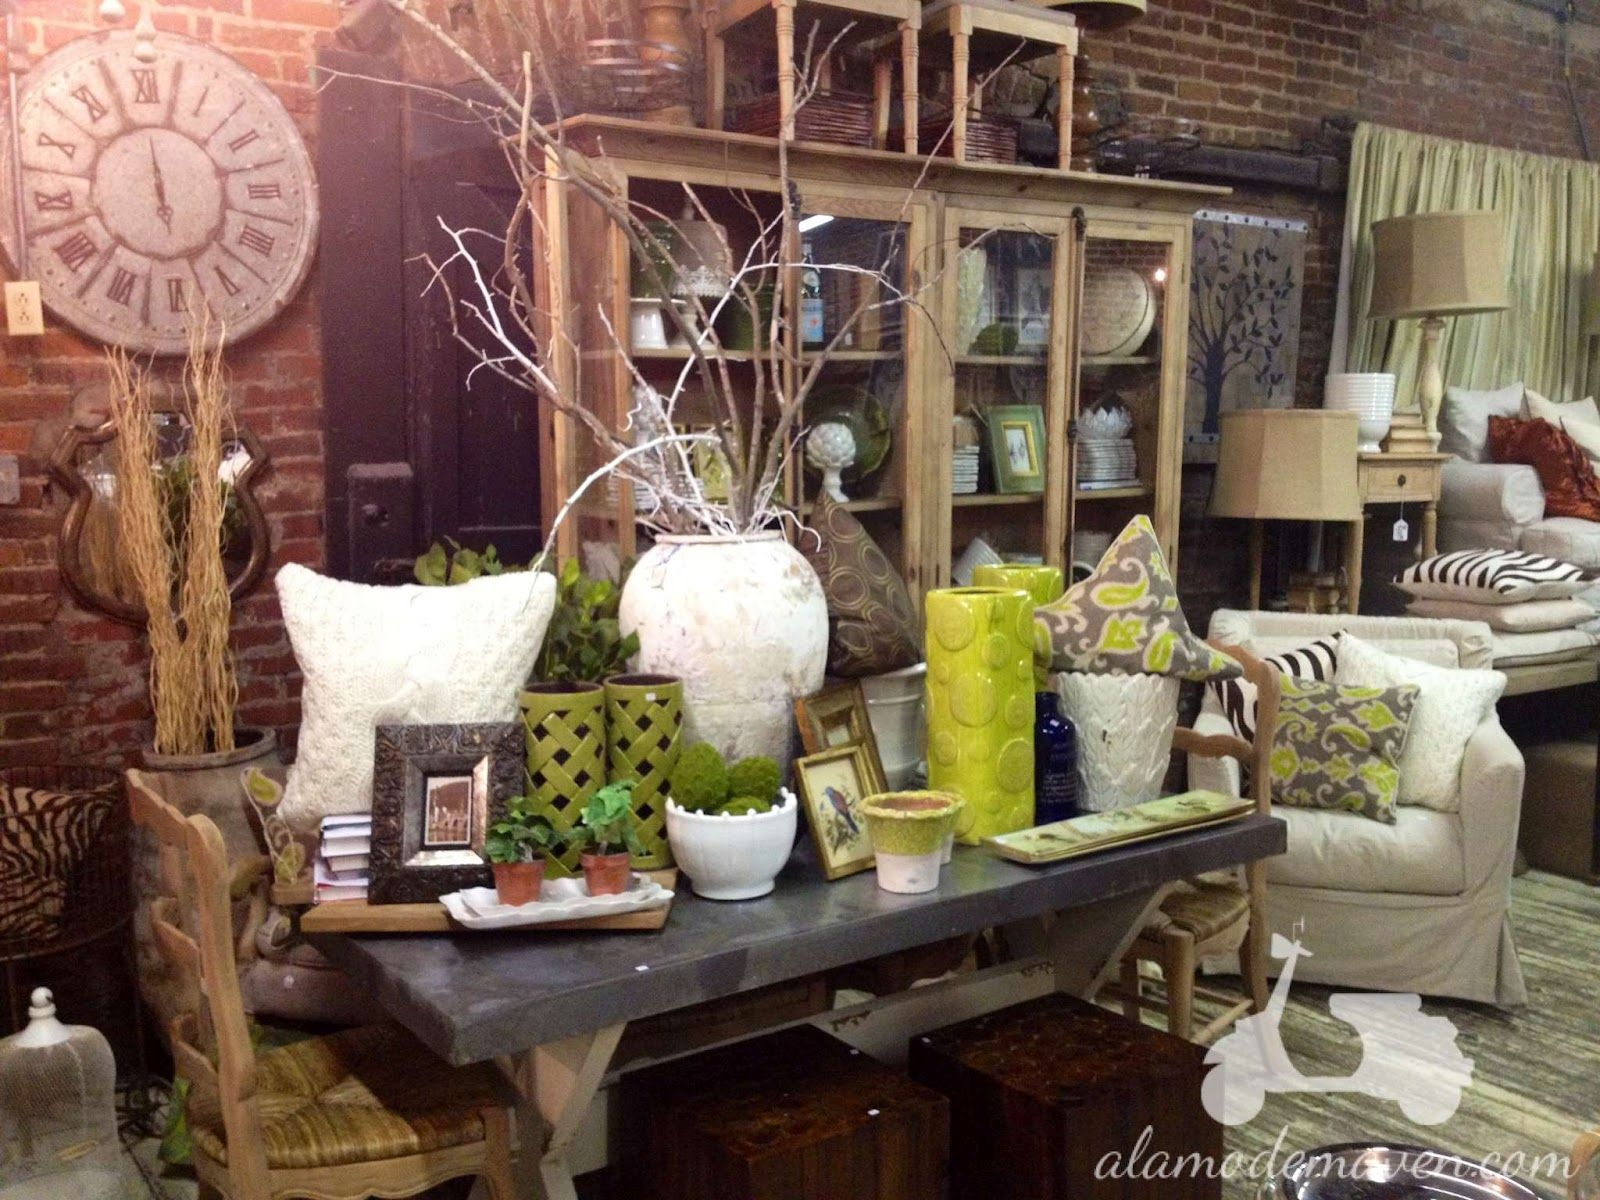 Marvelous Affordable Home Decor   Franklin, TN PDu0027s 119 South Margin Street Franklin,  TN